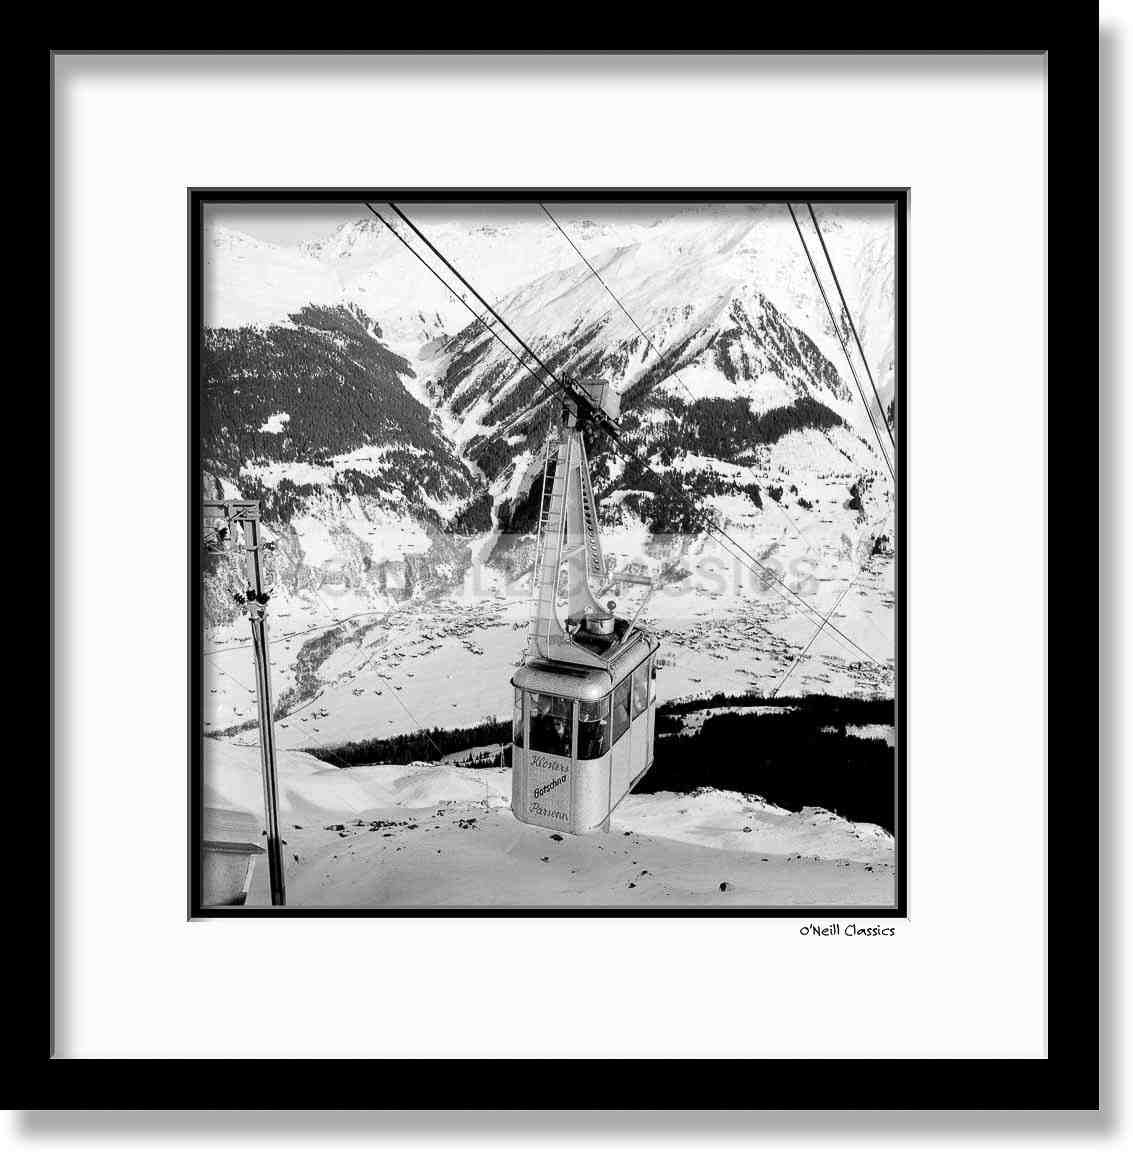 Cable Car, Klosters - Framed B&W photograph